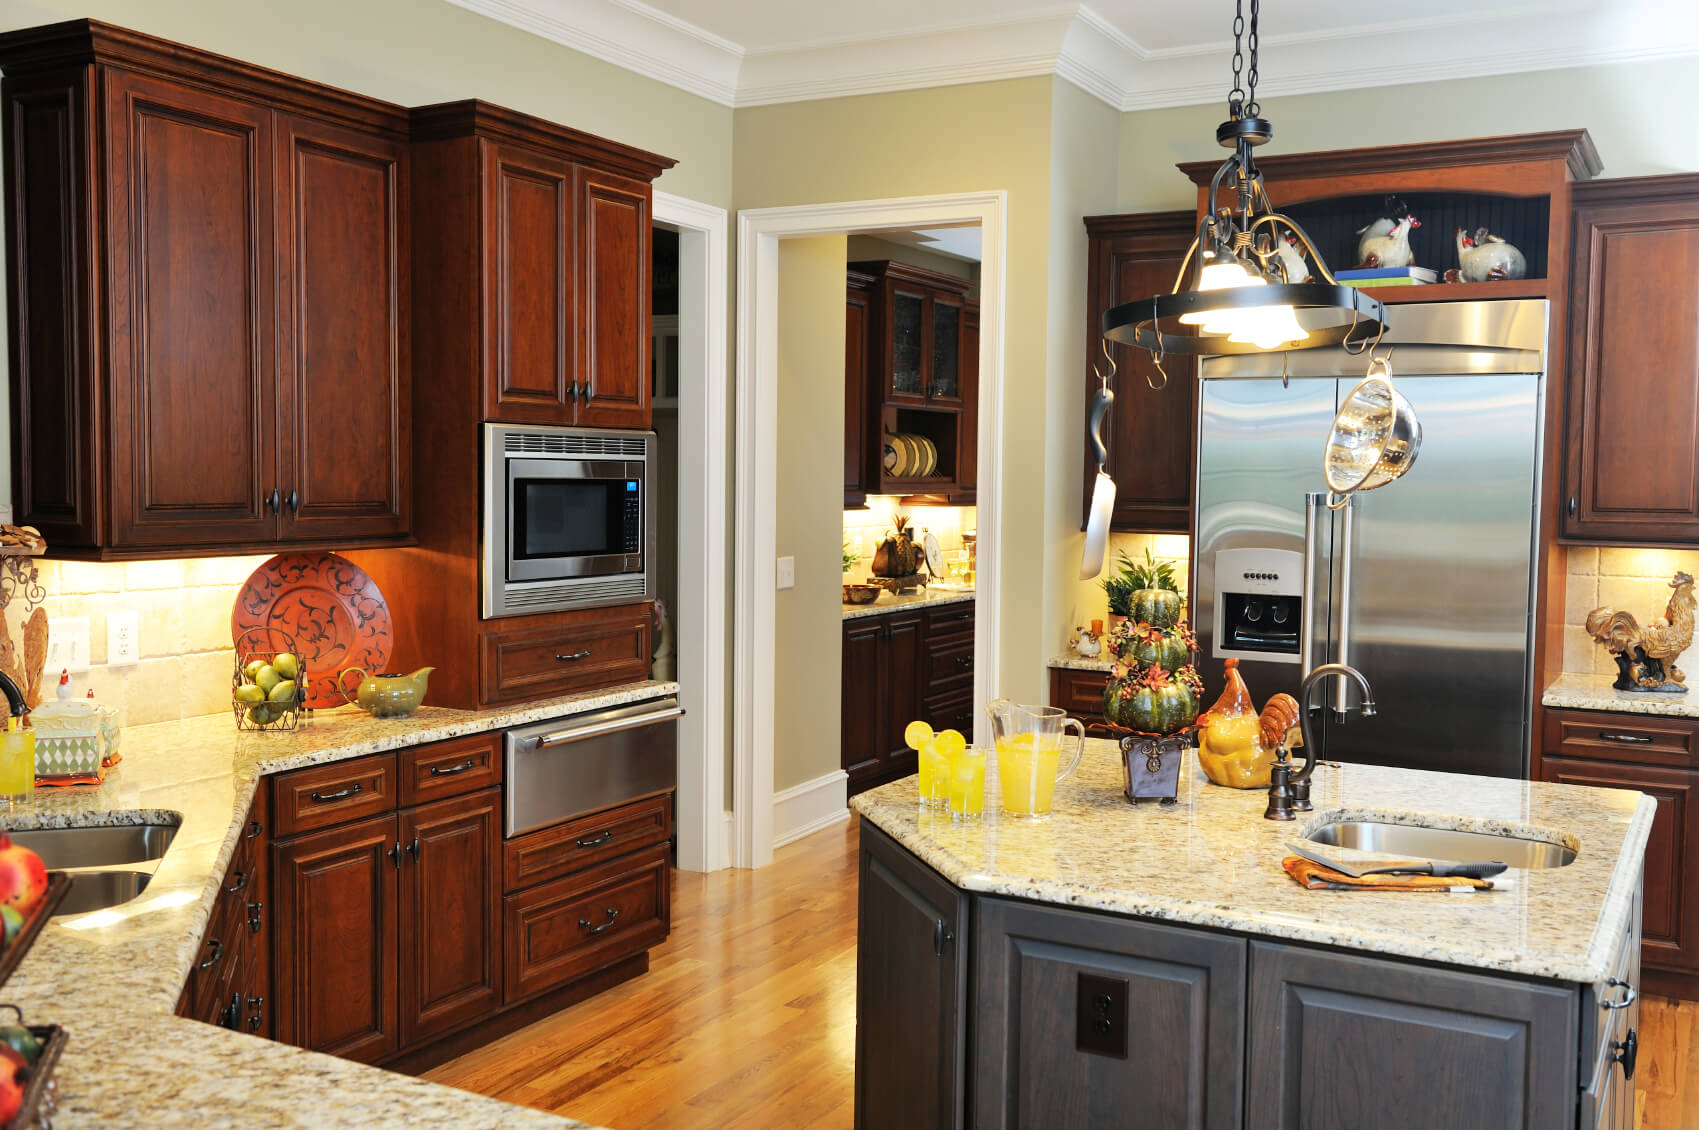 Dark Kitchens With Dark Wood And Black Kitchen Cabinets - Brown and black kitchen designs